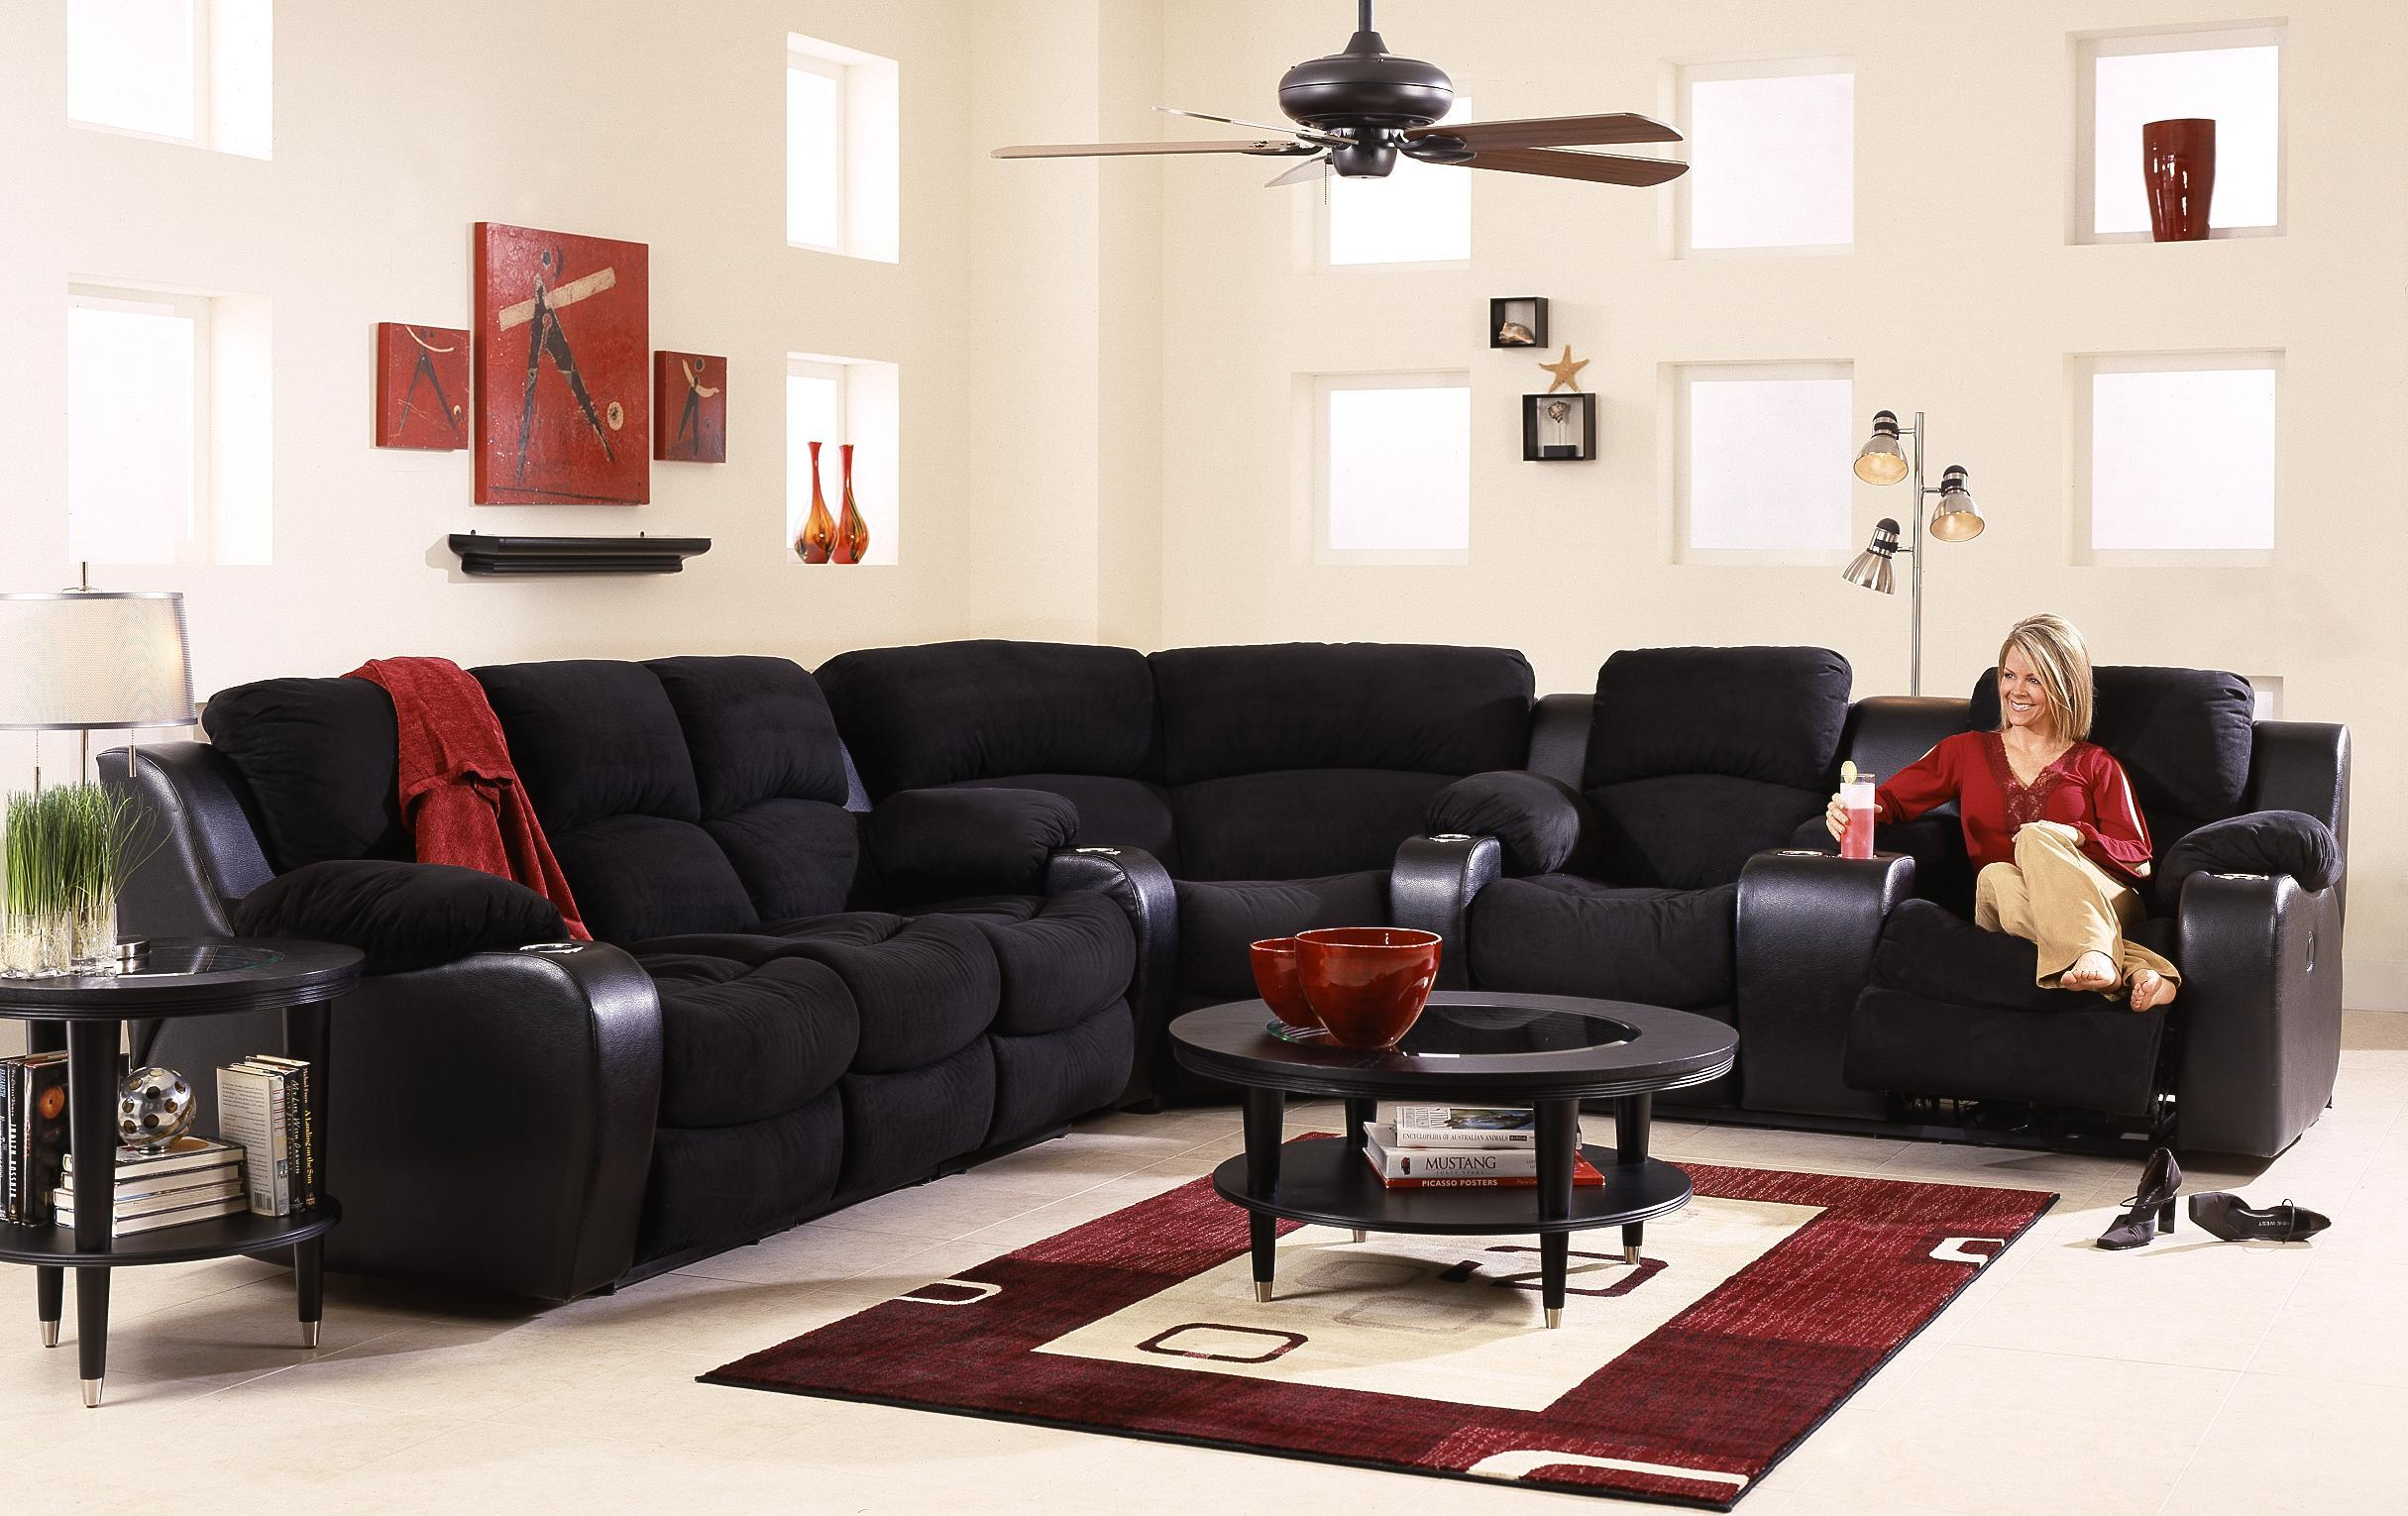 Reclining Sectional Sofa : reclining sectional furniture - Sectionals, Sofas & Couches